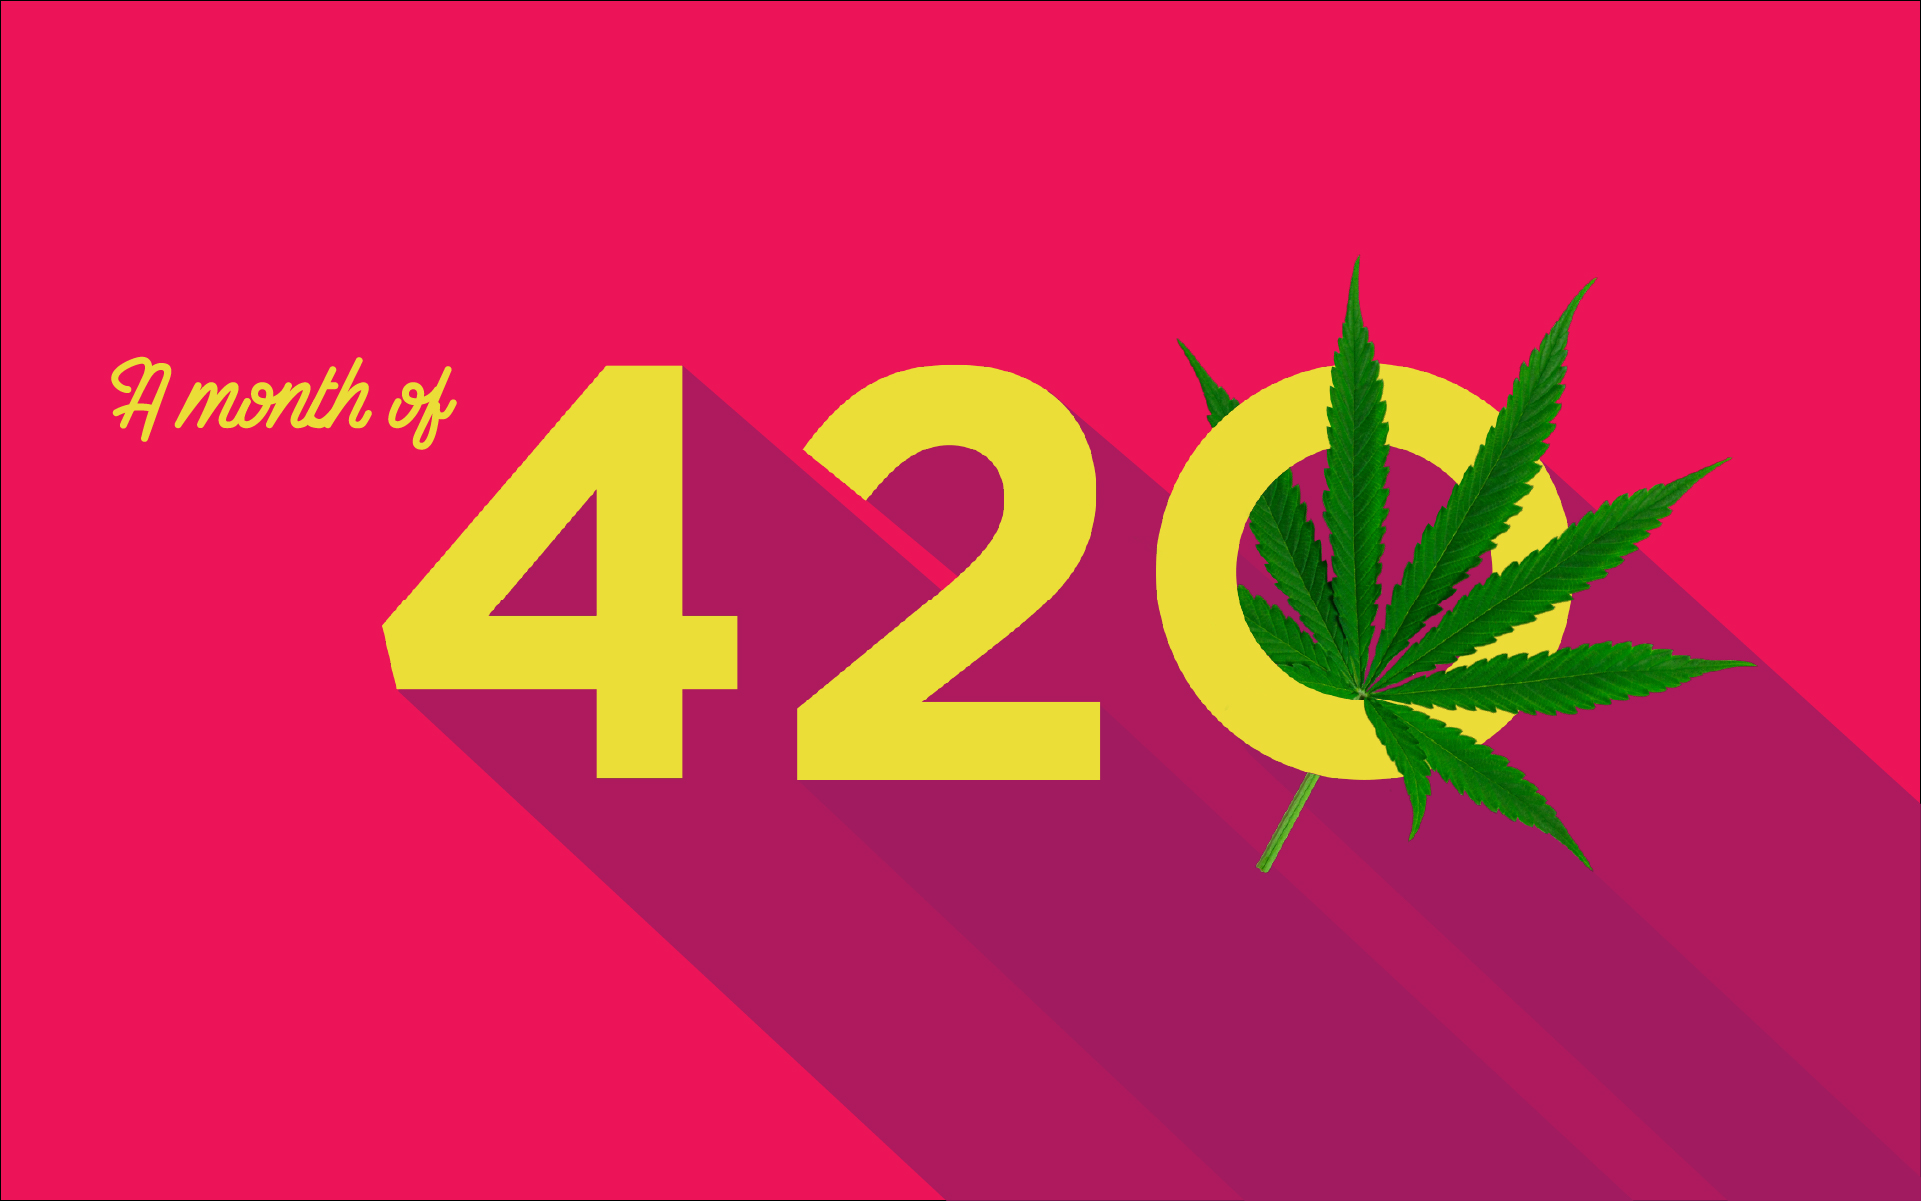 leafly's guide to 420 | leafly  leafly